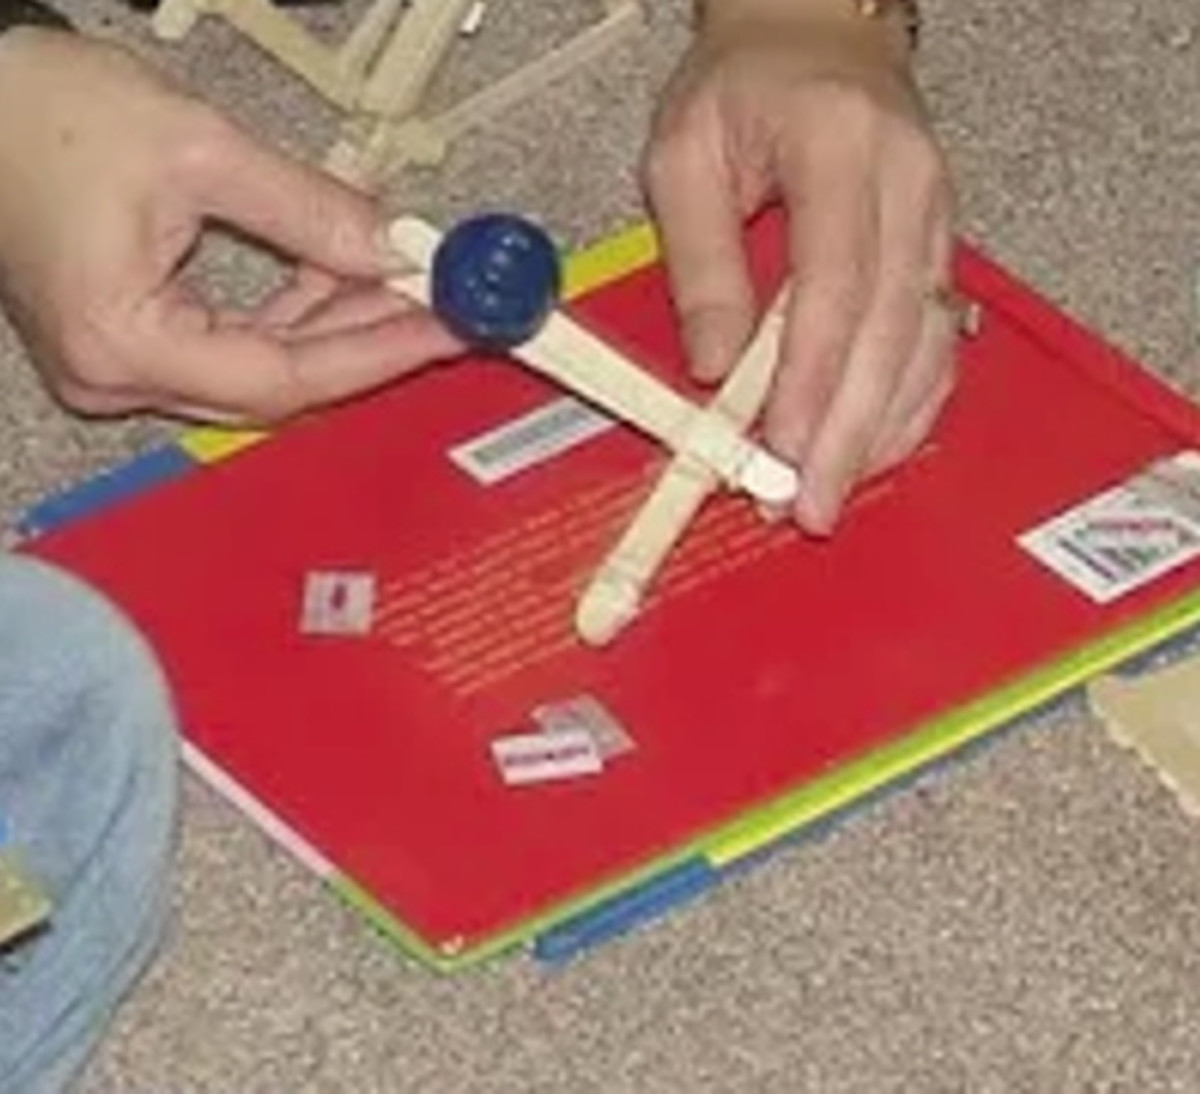 Popsicle Stick Catapults